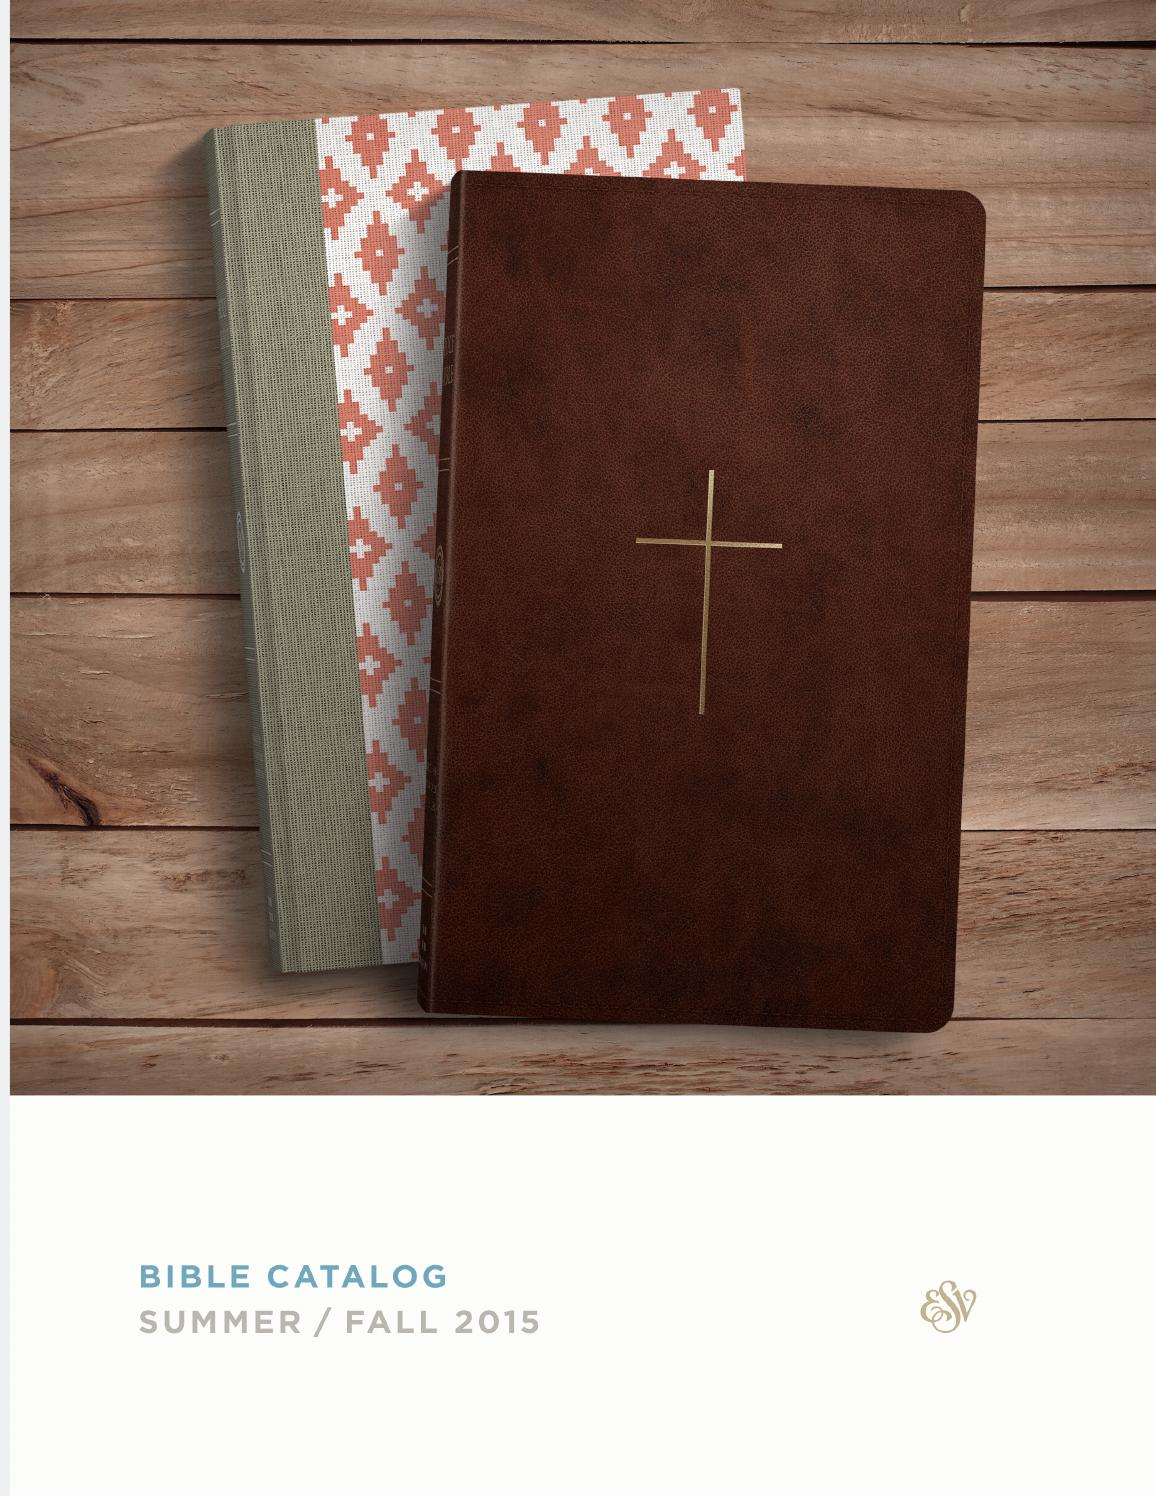 Esv summer fall 2015 bible catalog by crossway issuu for Garden design bible